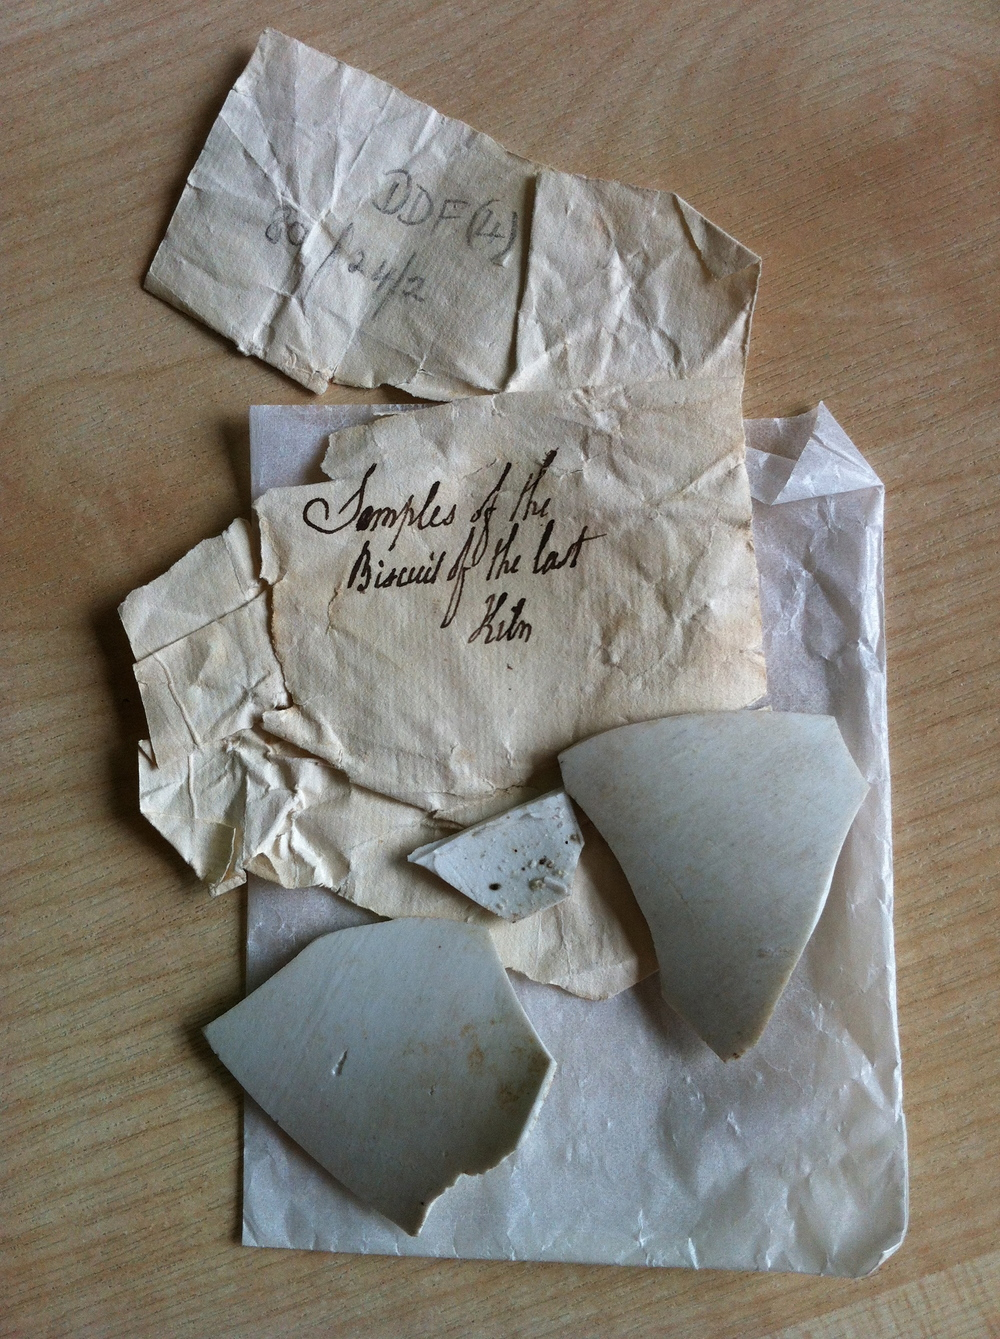 Shards from Cookworthy's porcelain experiments, 1766 © Cornwall Record Office, F/4/80 / Nerissa Taysom